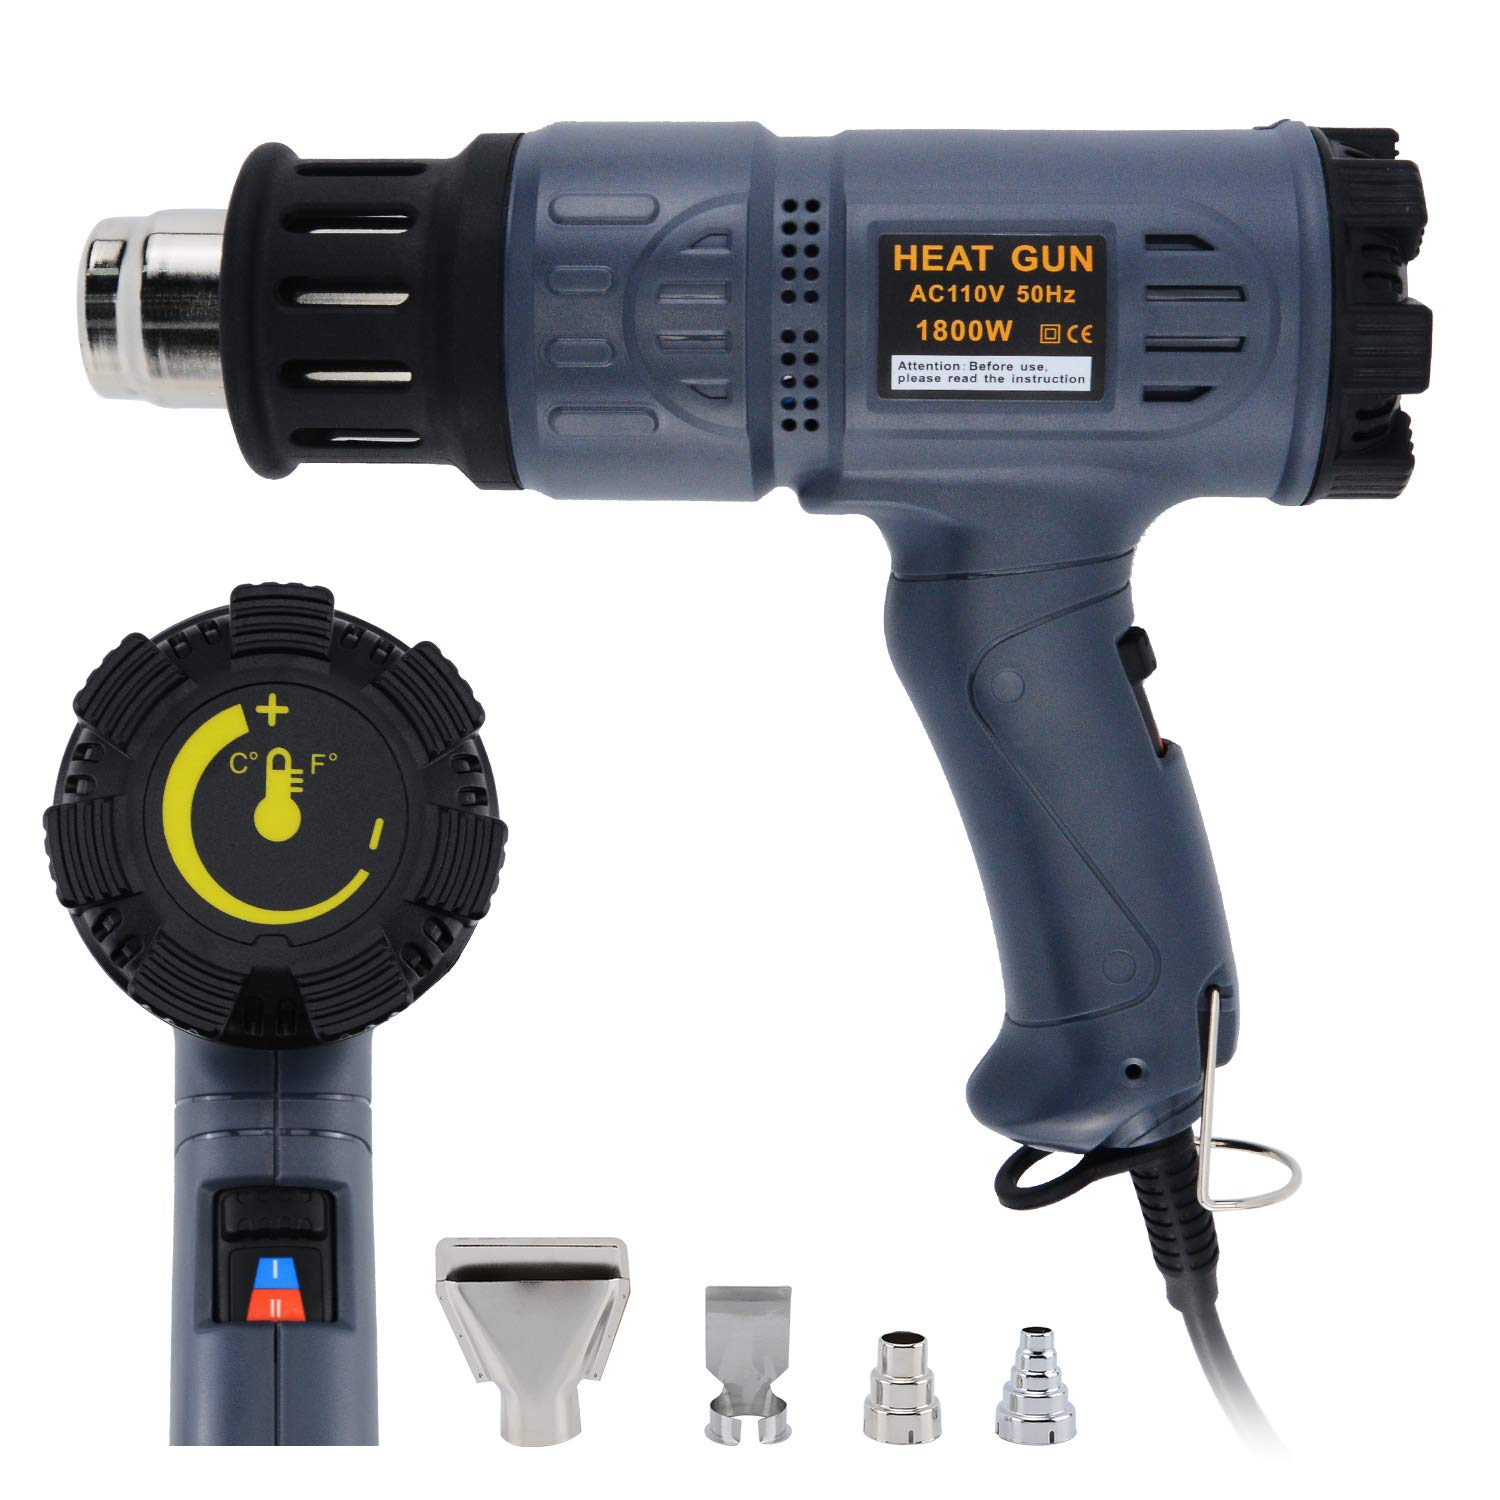 MokenEye 1800W Heat Gun 122℉~ 1112℉ 50℃ 600℃ Precision Control Temperature by Adjustment Dial with Two Temp settings Temperature Heat Gun Kit with Four Metal Nozzle